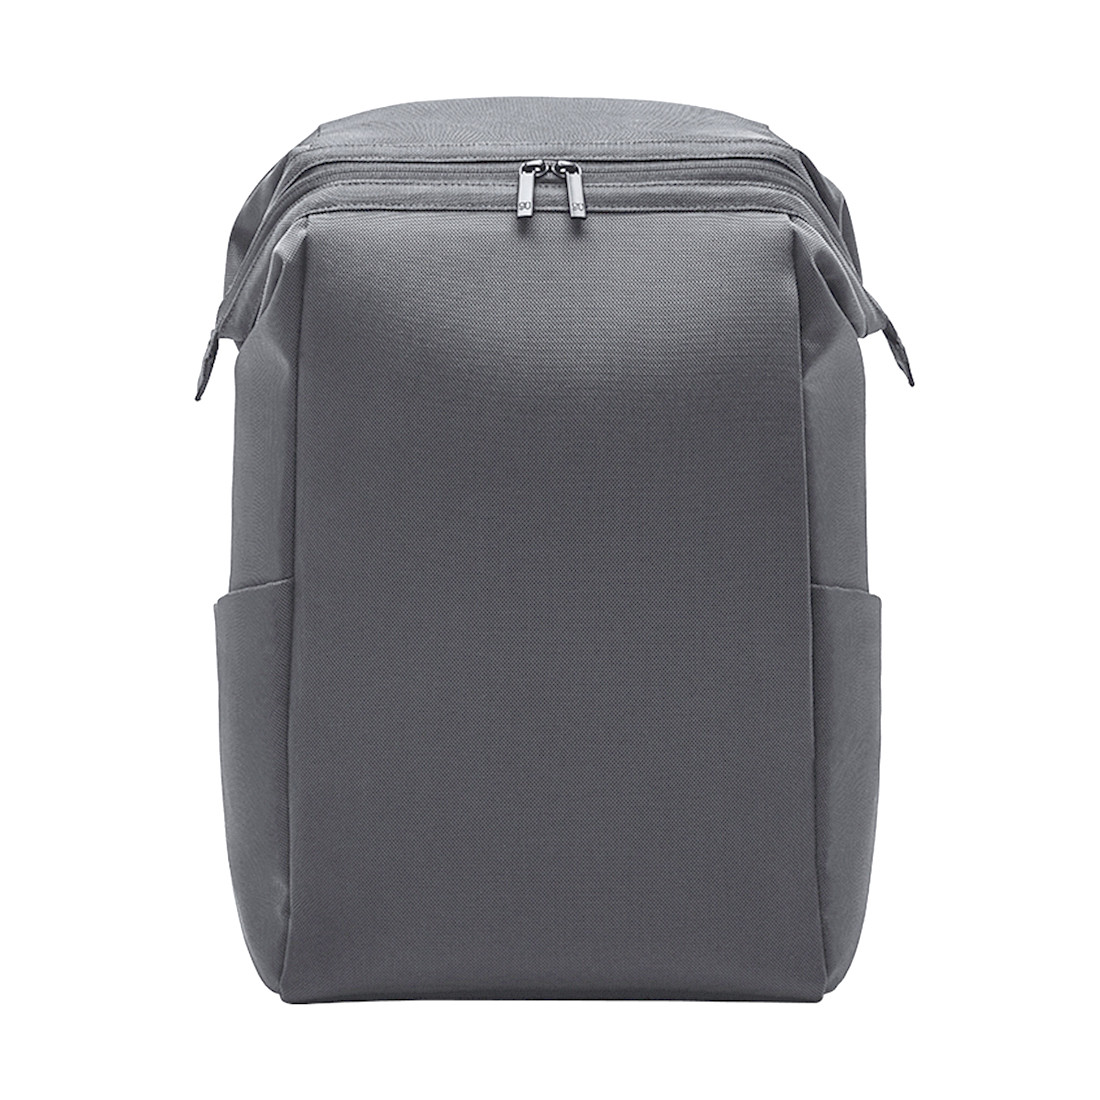 Рюкзак Xiaomi 90 Points Multitasker Commuter Backpack Серый